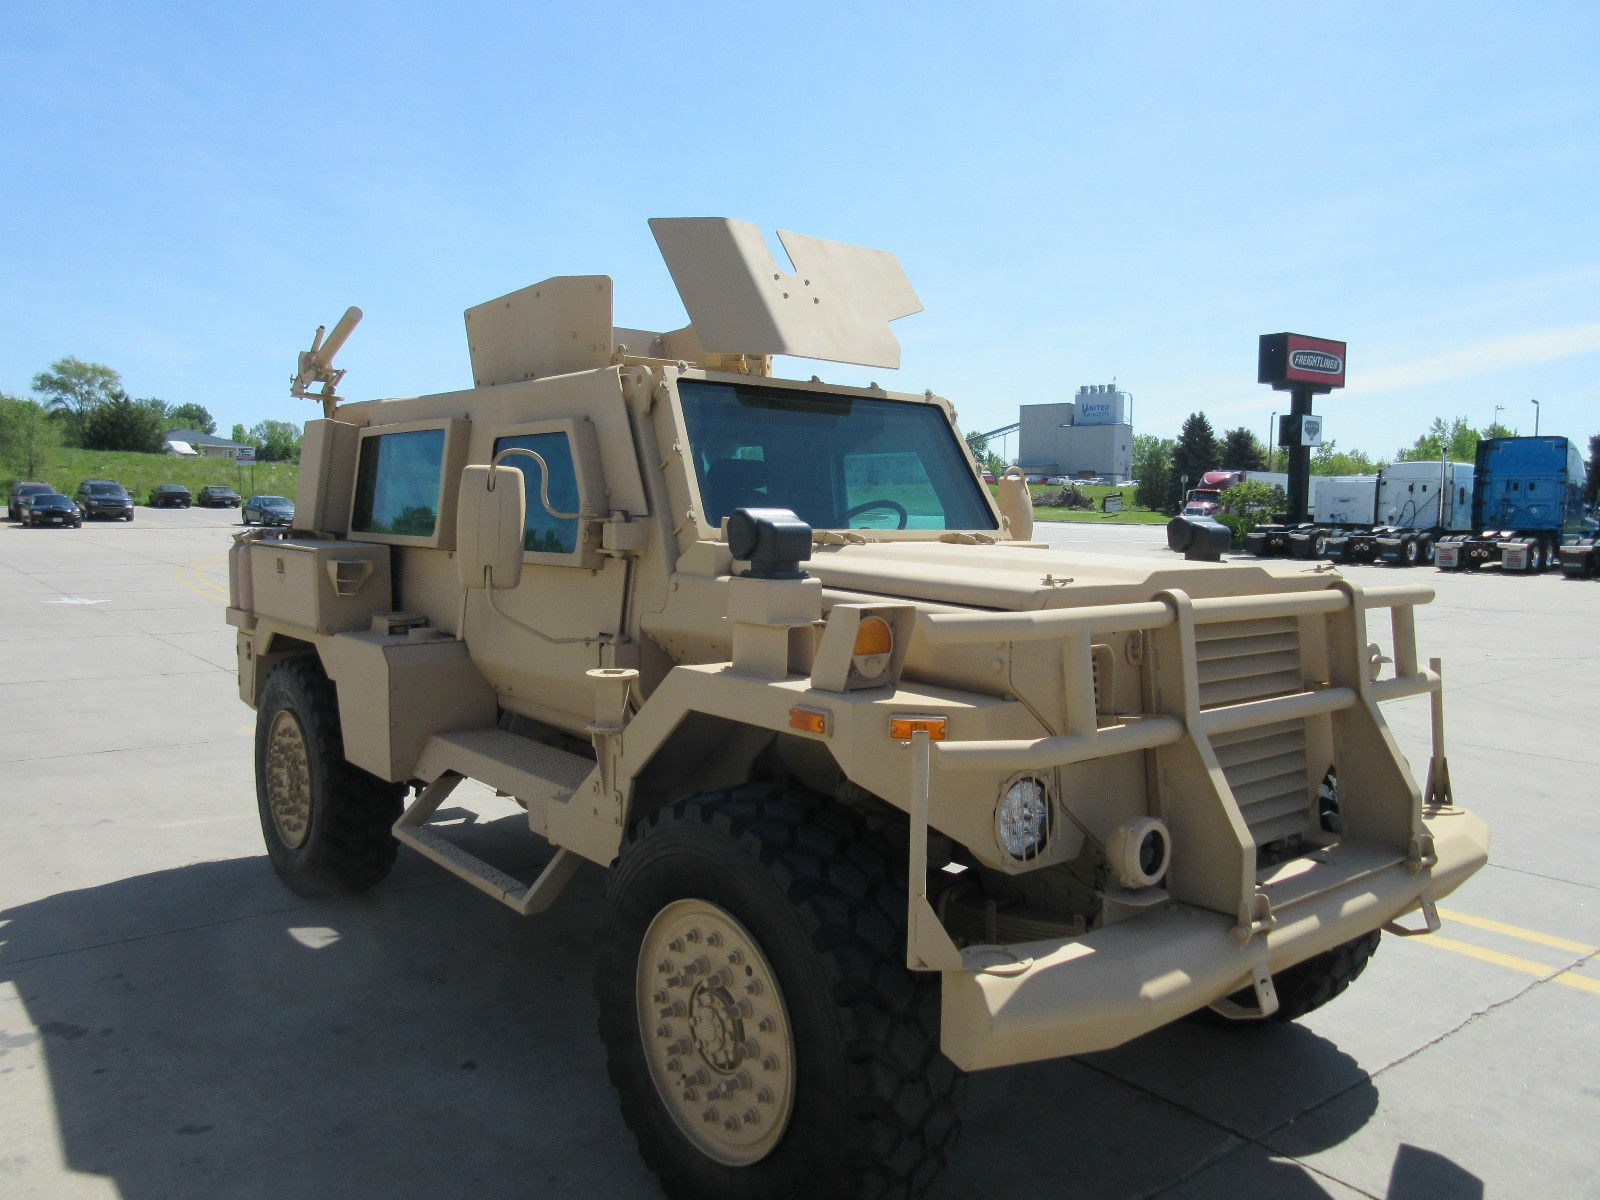 Ebay Used Cars for Sale Awesome Armored Military Vehicle Used In Iron Man 3 is On Ebay Autoevolution